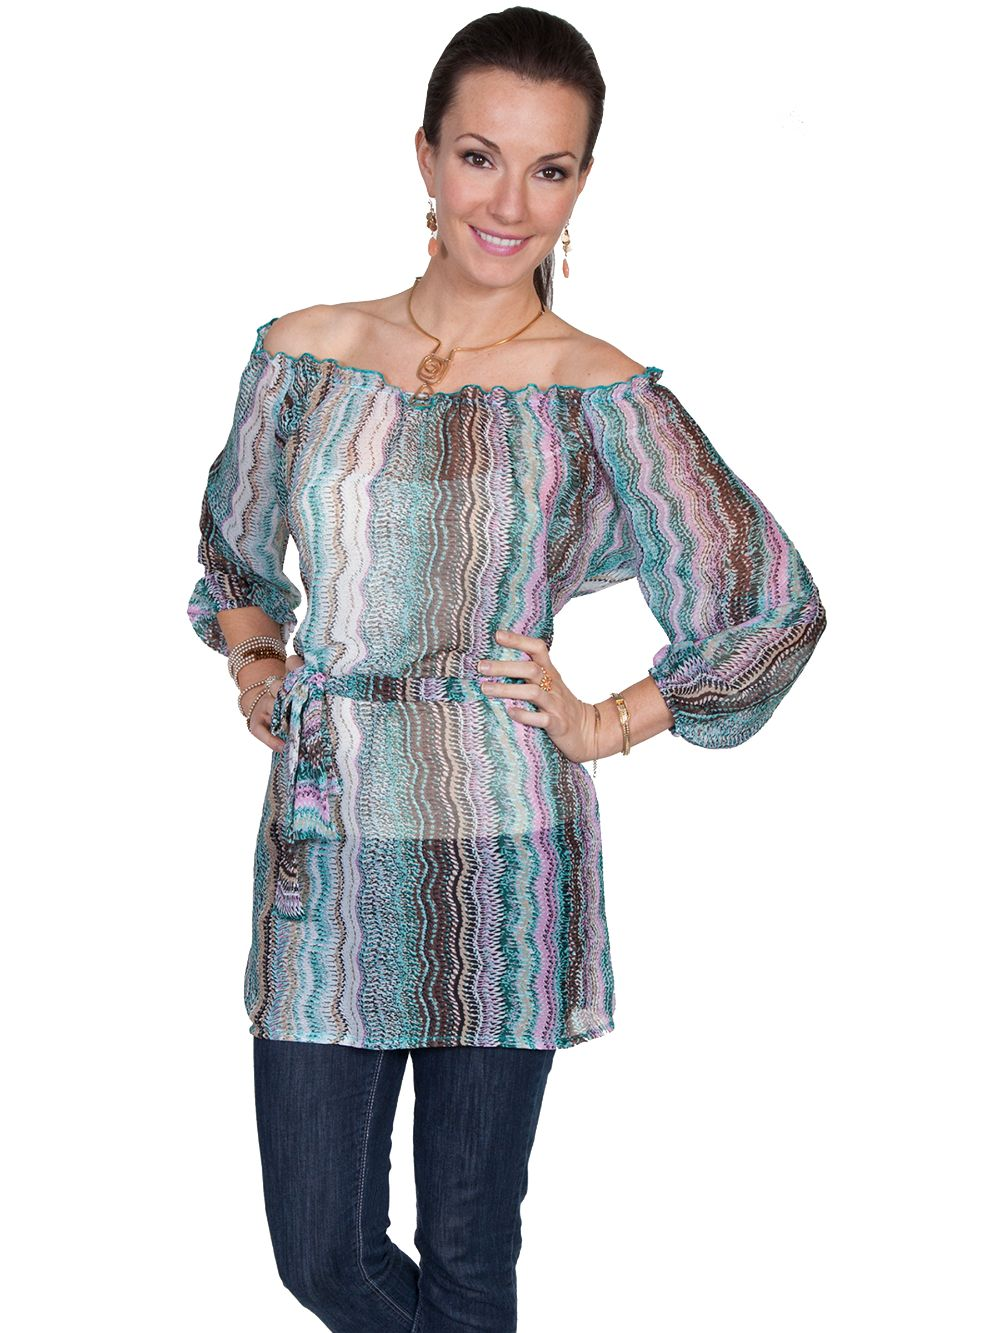 3/4 Sleeve Tunic W/Sash - E78 - Aqua. (ships in 1-2 days). #F0_E78_AQU